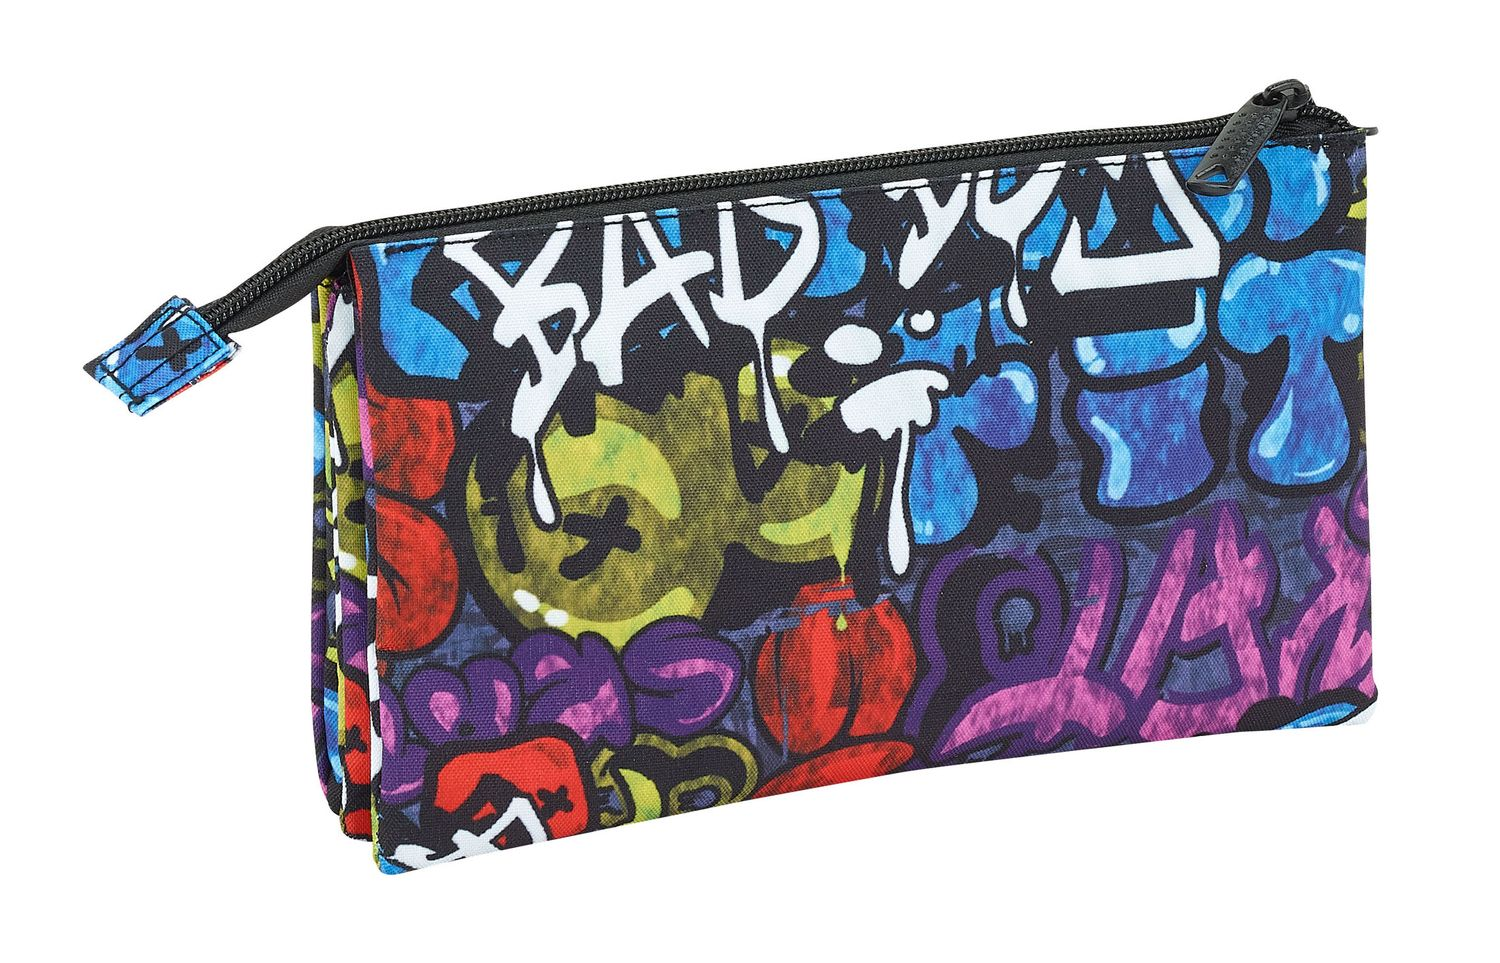 Blackfit Bad Boy Triple pencil case  – image 3